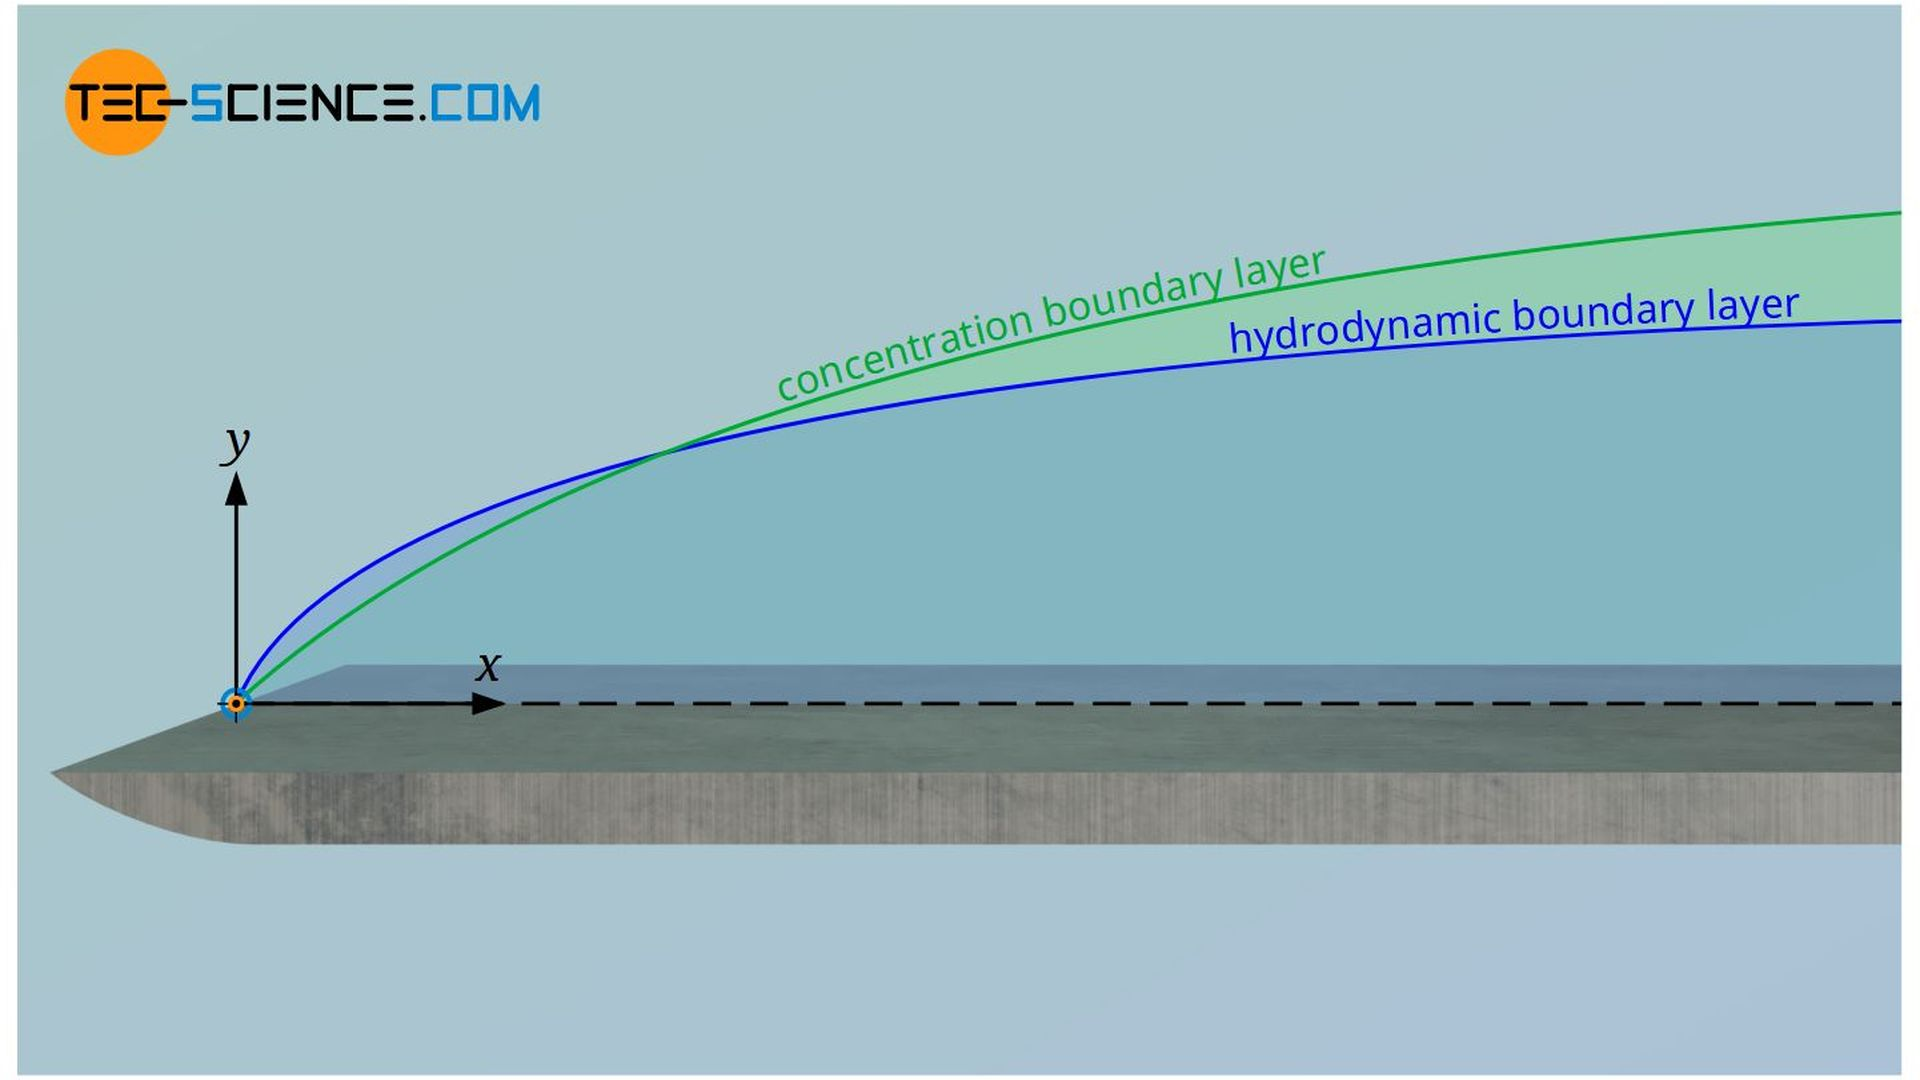 Schmidt number as a measure for the ratio of the thickness of the hydrodynamic boundary layer and the concentration boundary layer